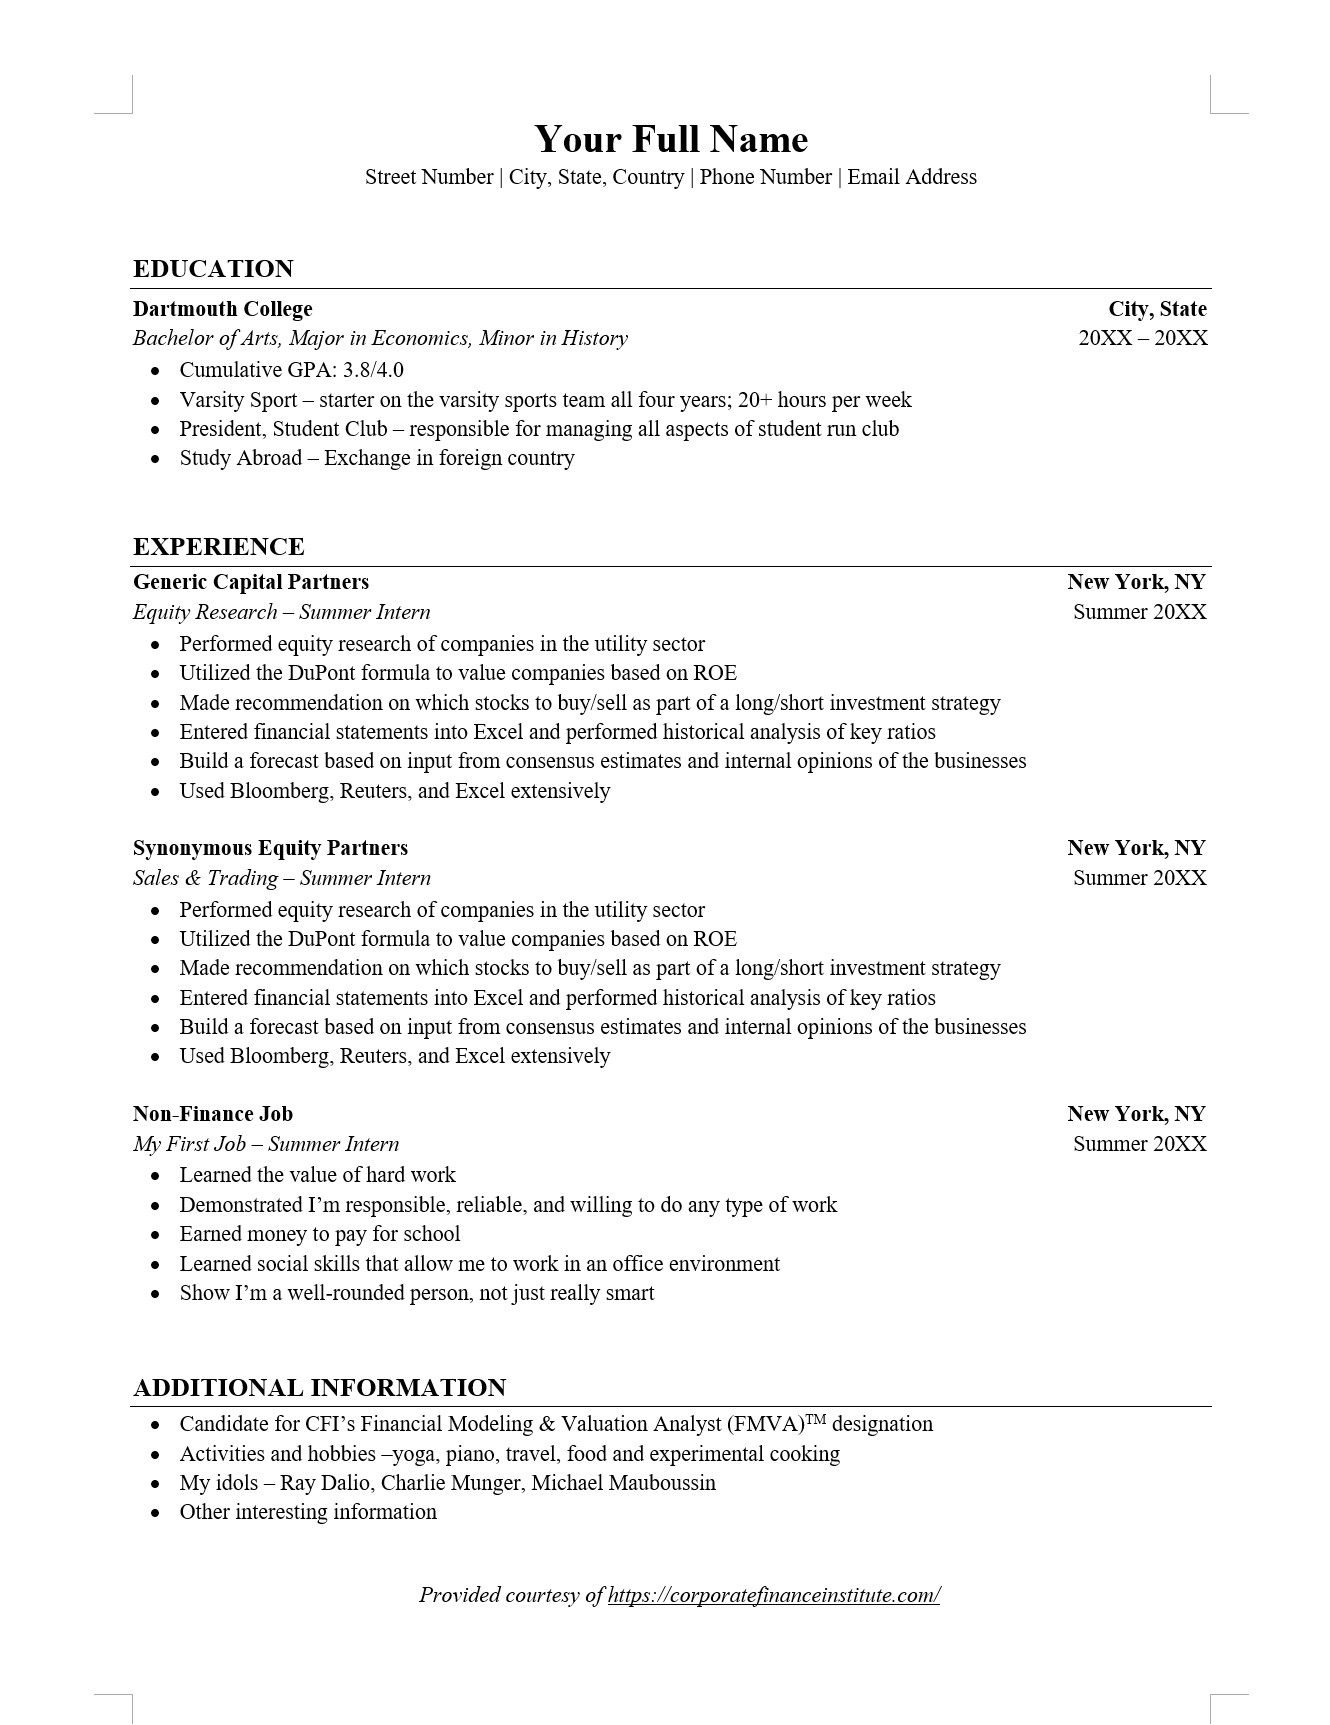 investment banking ib resume word template